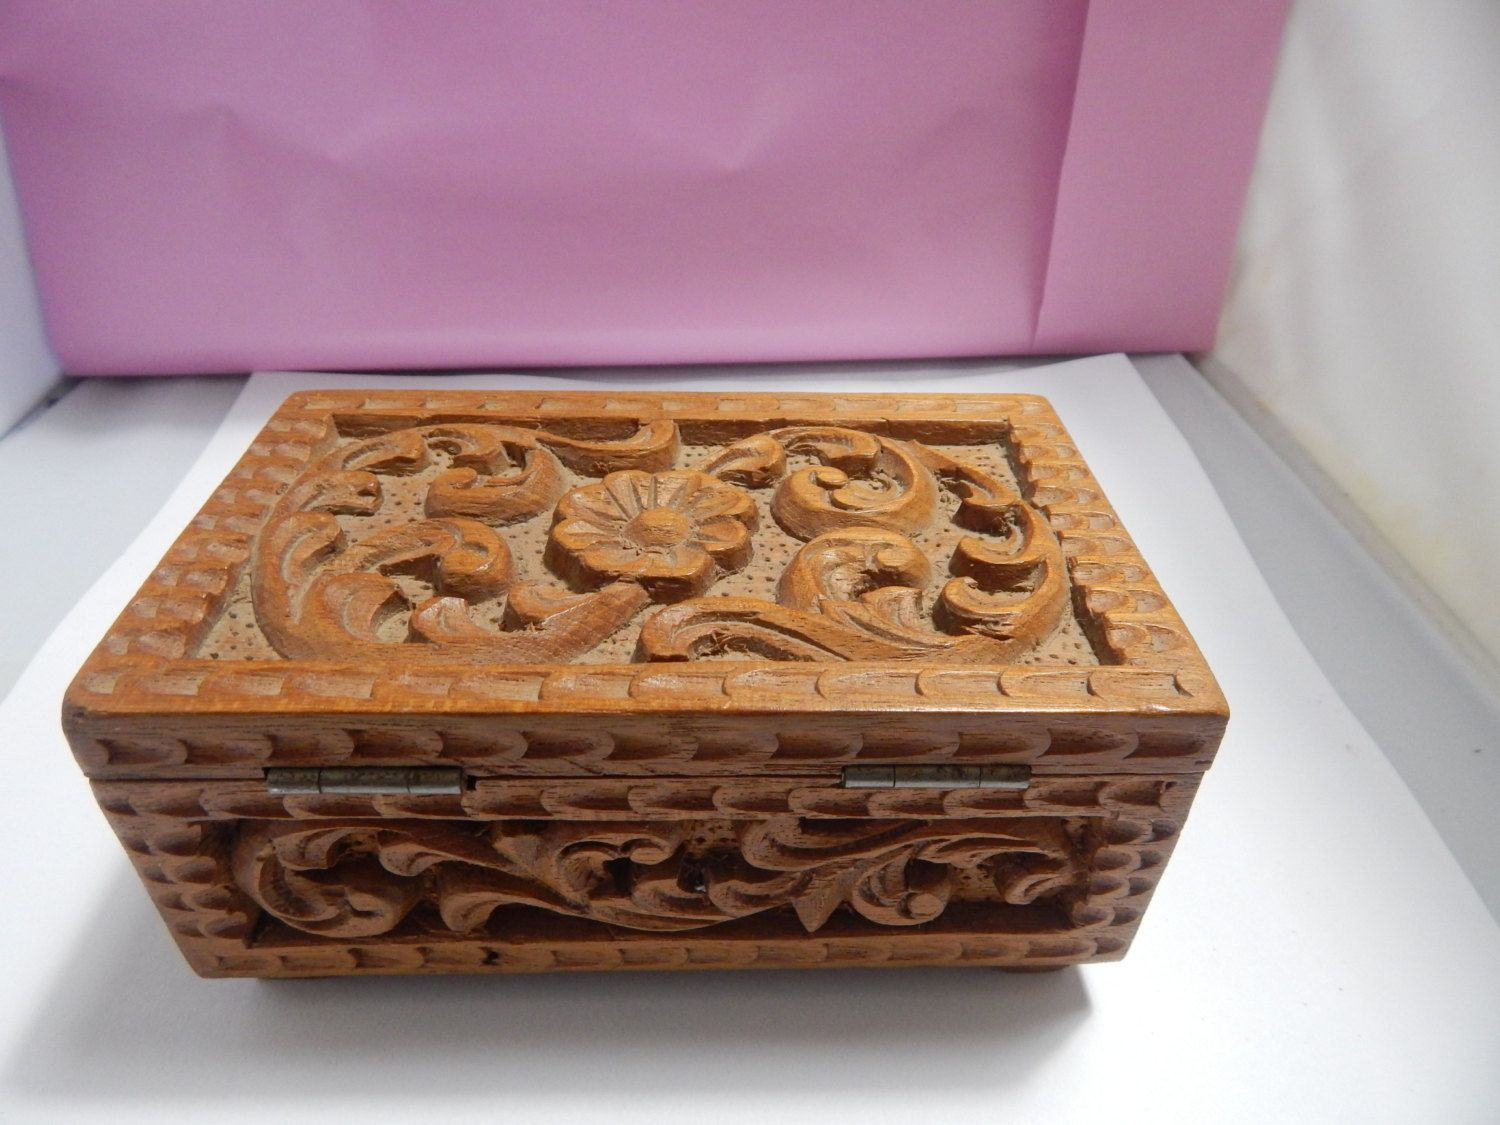 """Vintage 1960's Carved Wood Trinket Decorative Box   6"""" x 3.5""""  x 3"""" by ZimmysCollectibles on Etsy"""